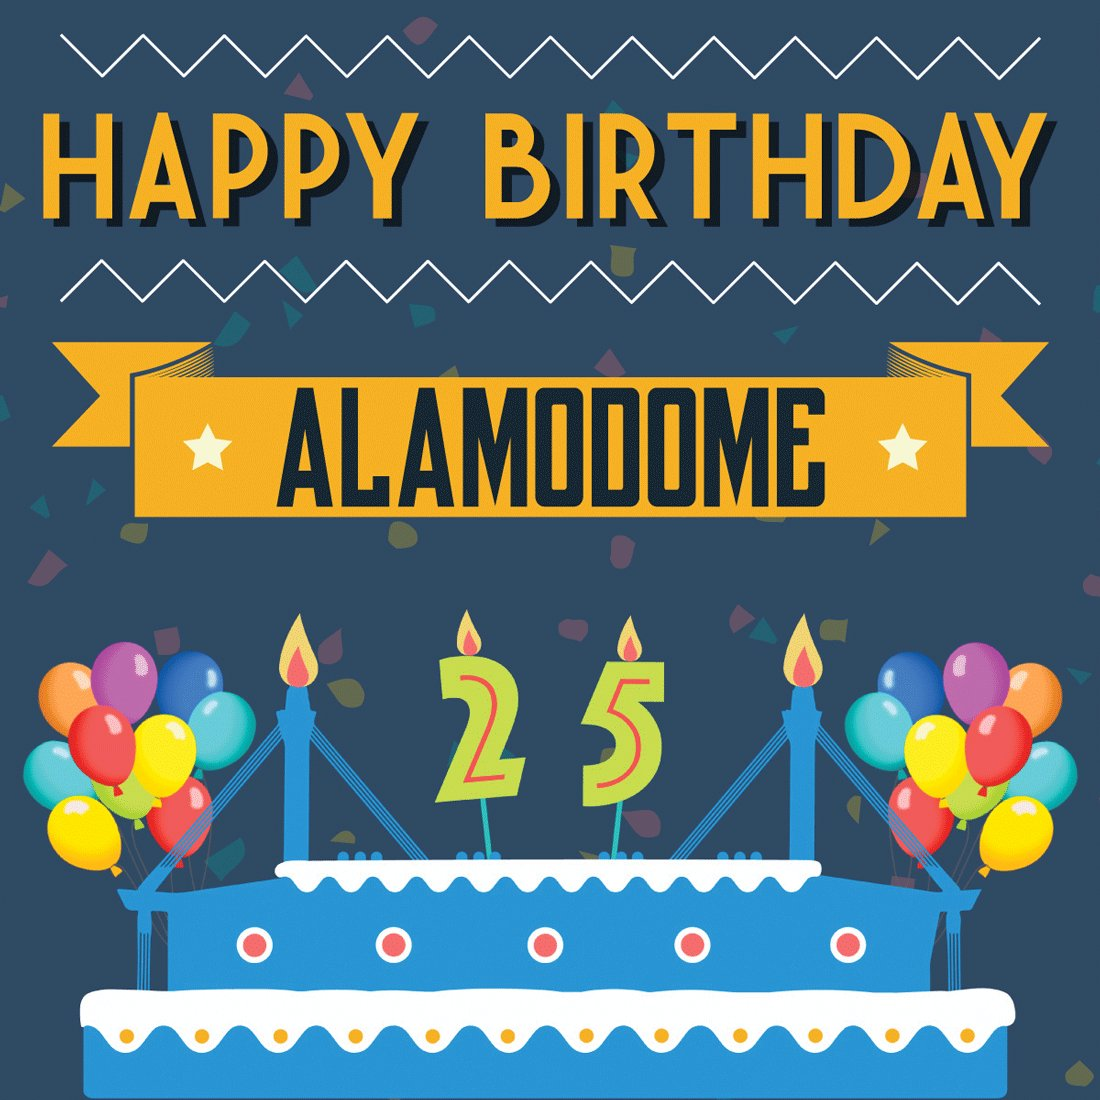 Alamodome On Twitter Happy Birthday